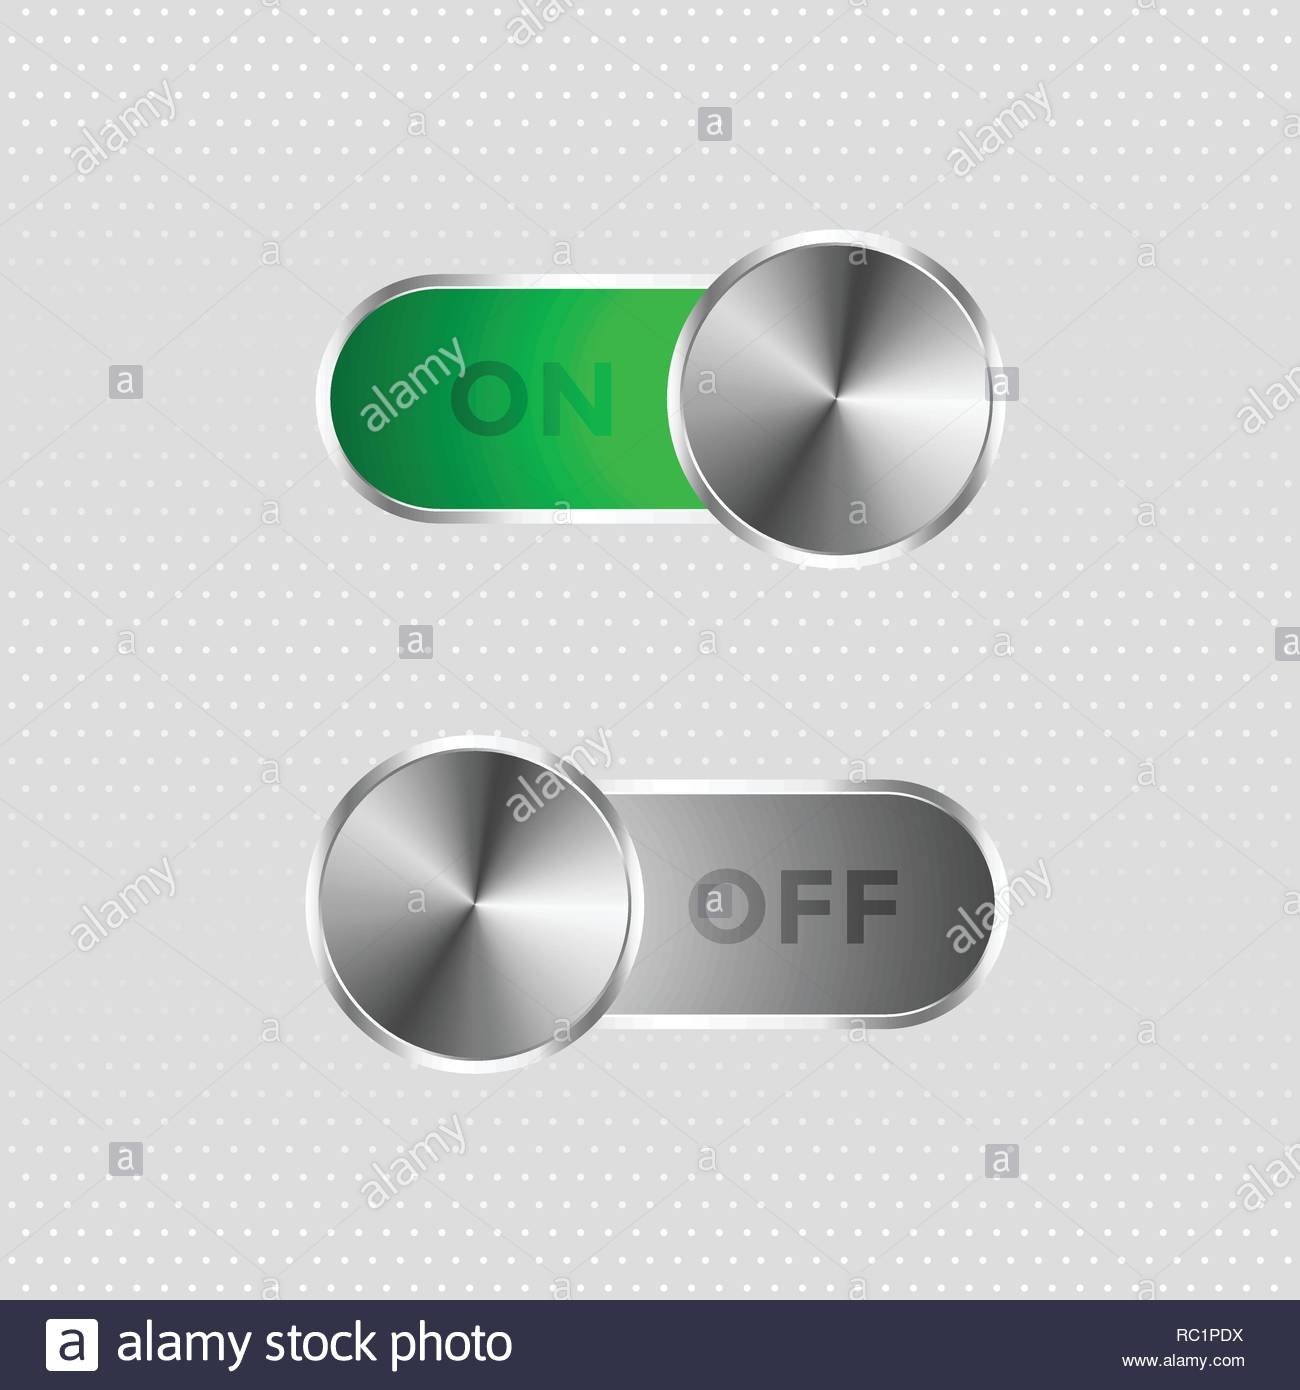 metal toggle switch on and off button - Stock Vector